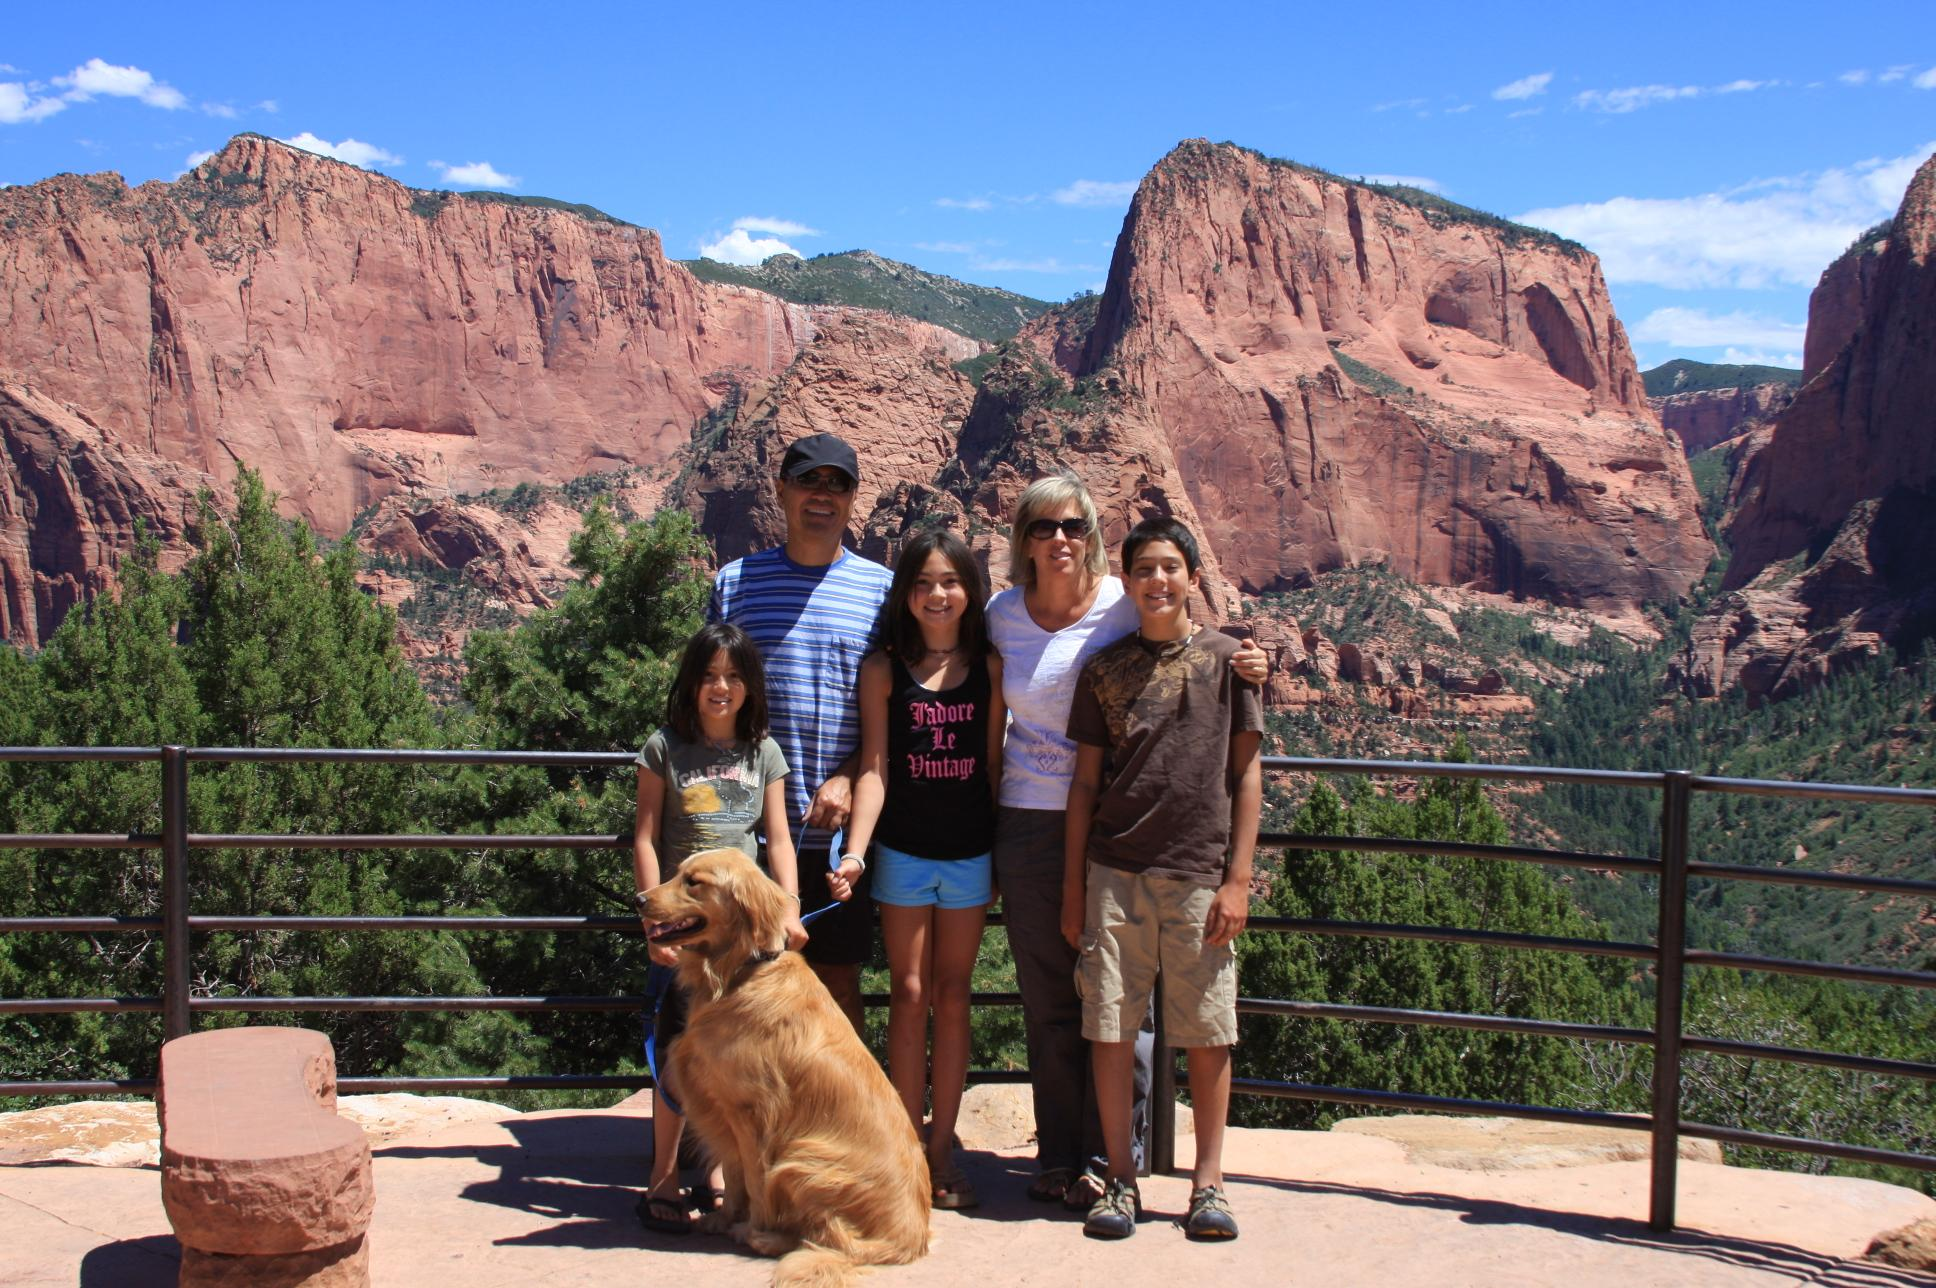 Goodbye Zion!  We will be back